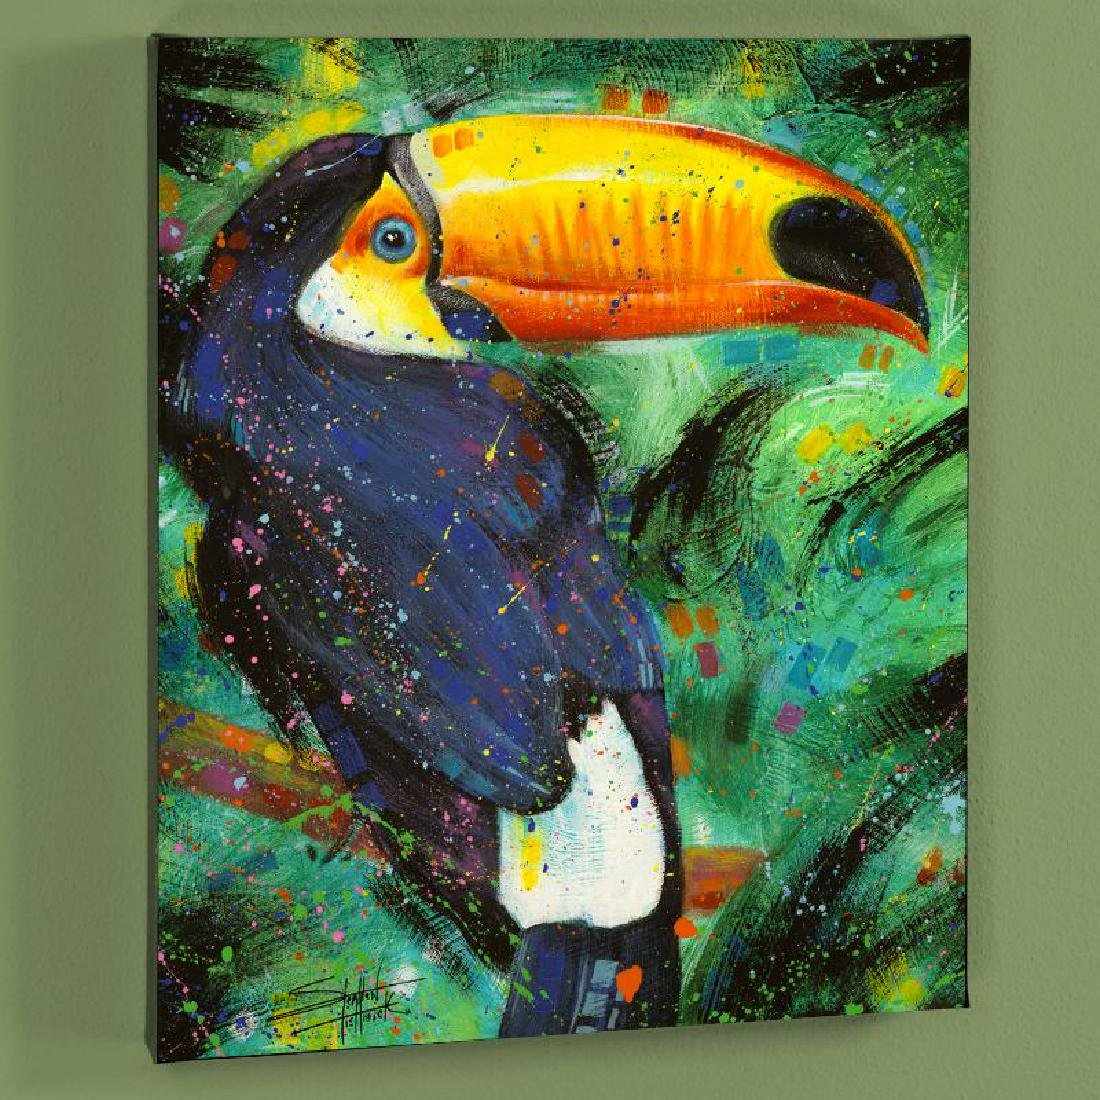 Toucan by Fishwick, Stephen